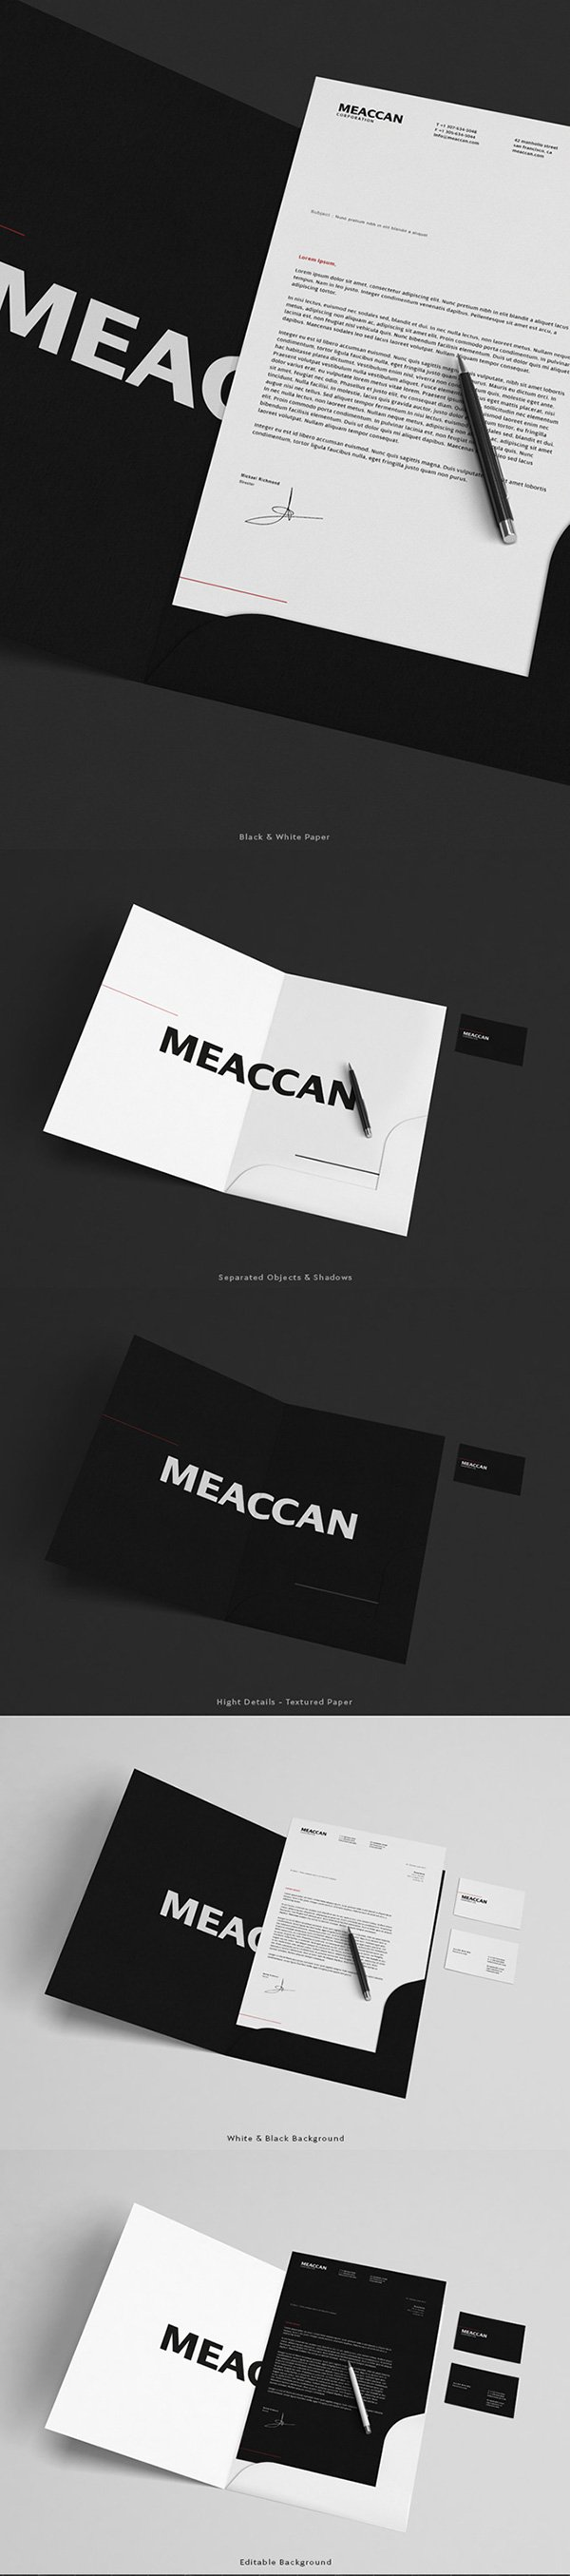 Black & White Stationery Mockup